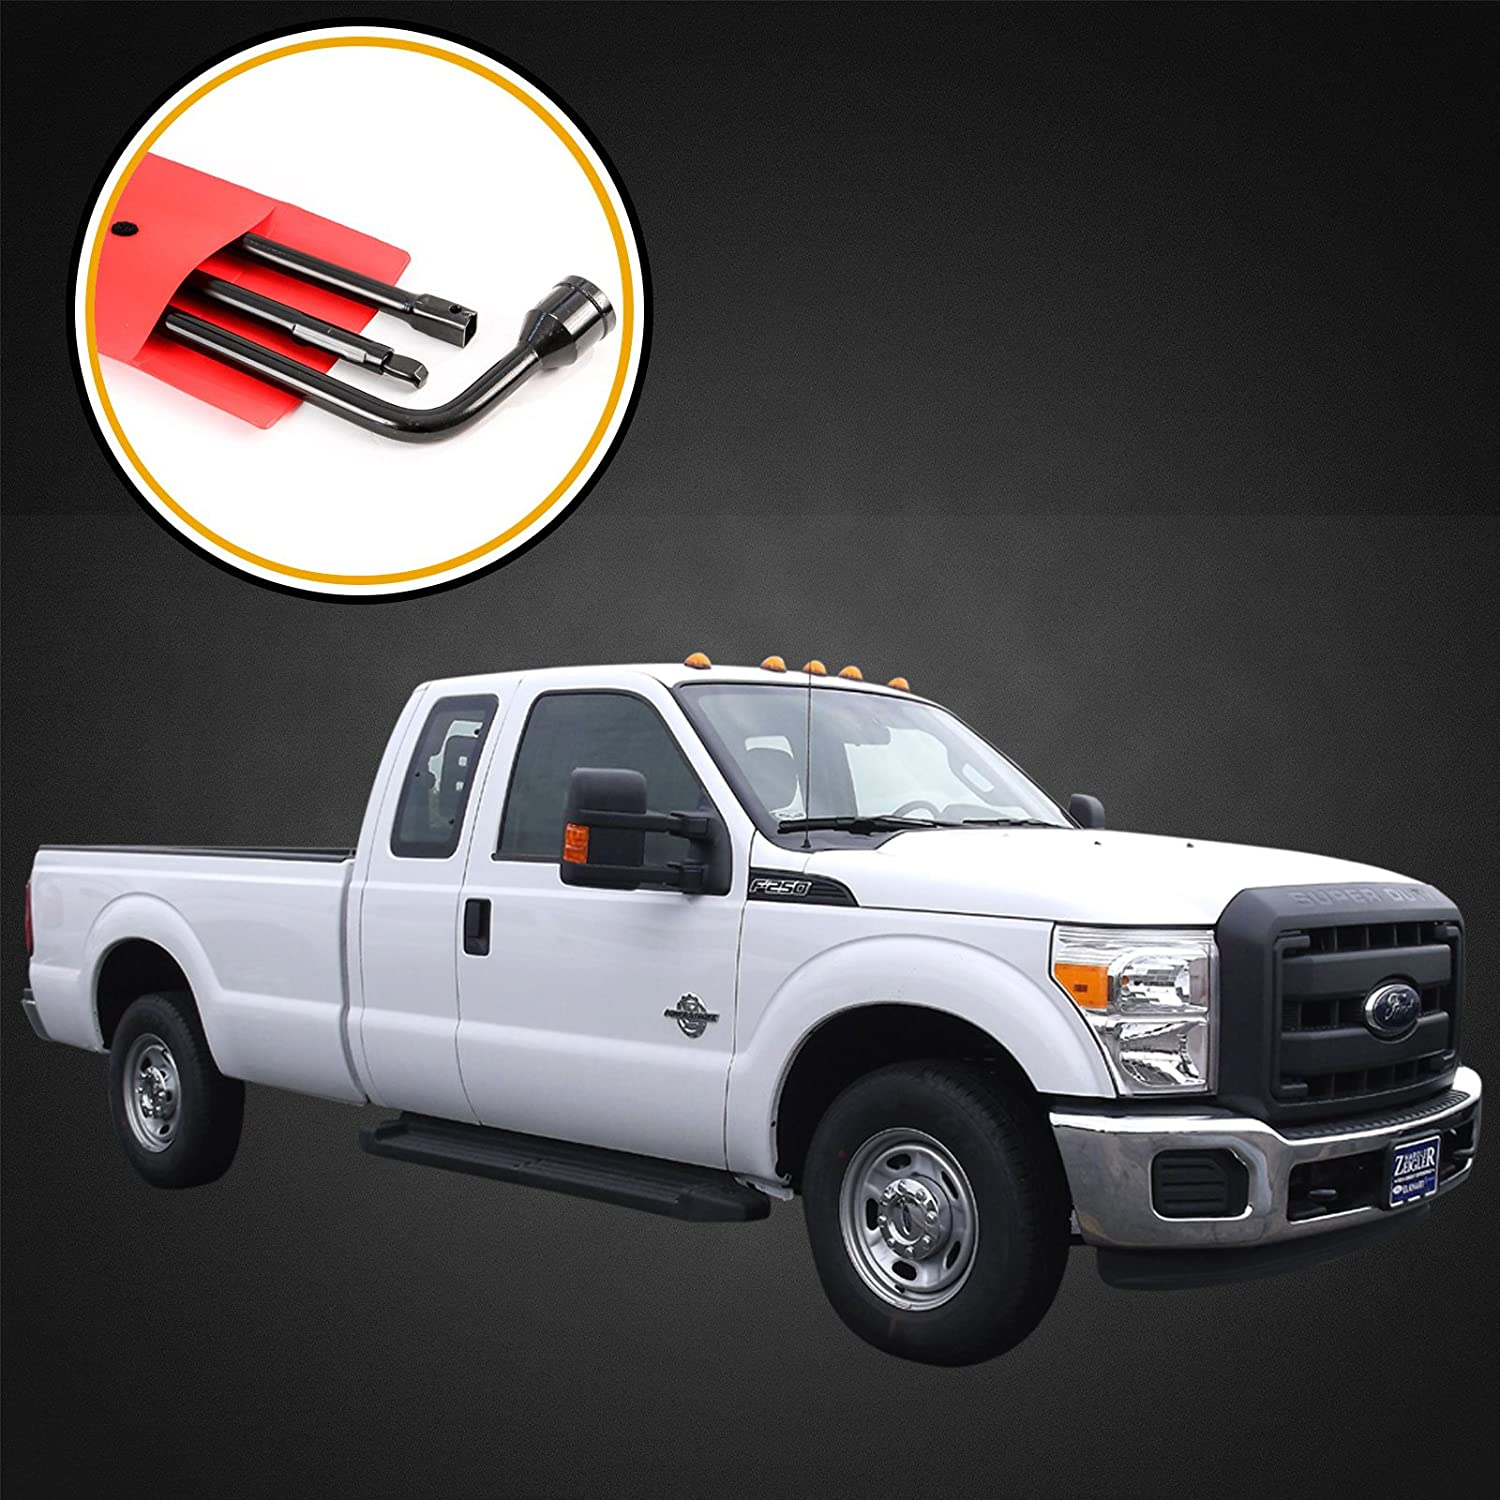 Red Hound Auto 2003 2007 Spare Tire Tool Replacement Set 89 Ford F 250 Fuel Filter Kit For Jack Compatible With Super Duty F250 F350 F450 F550 Automotive